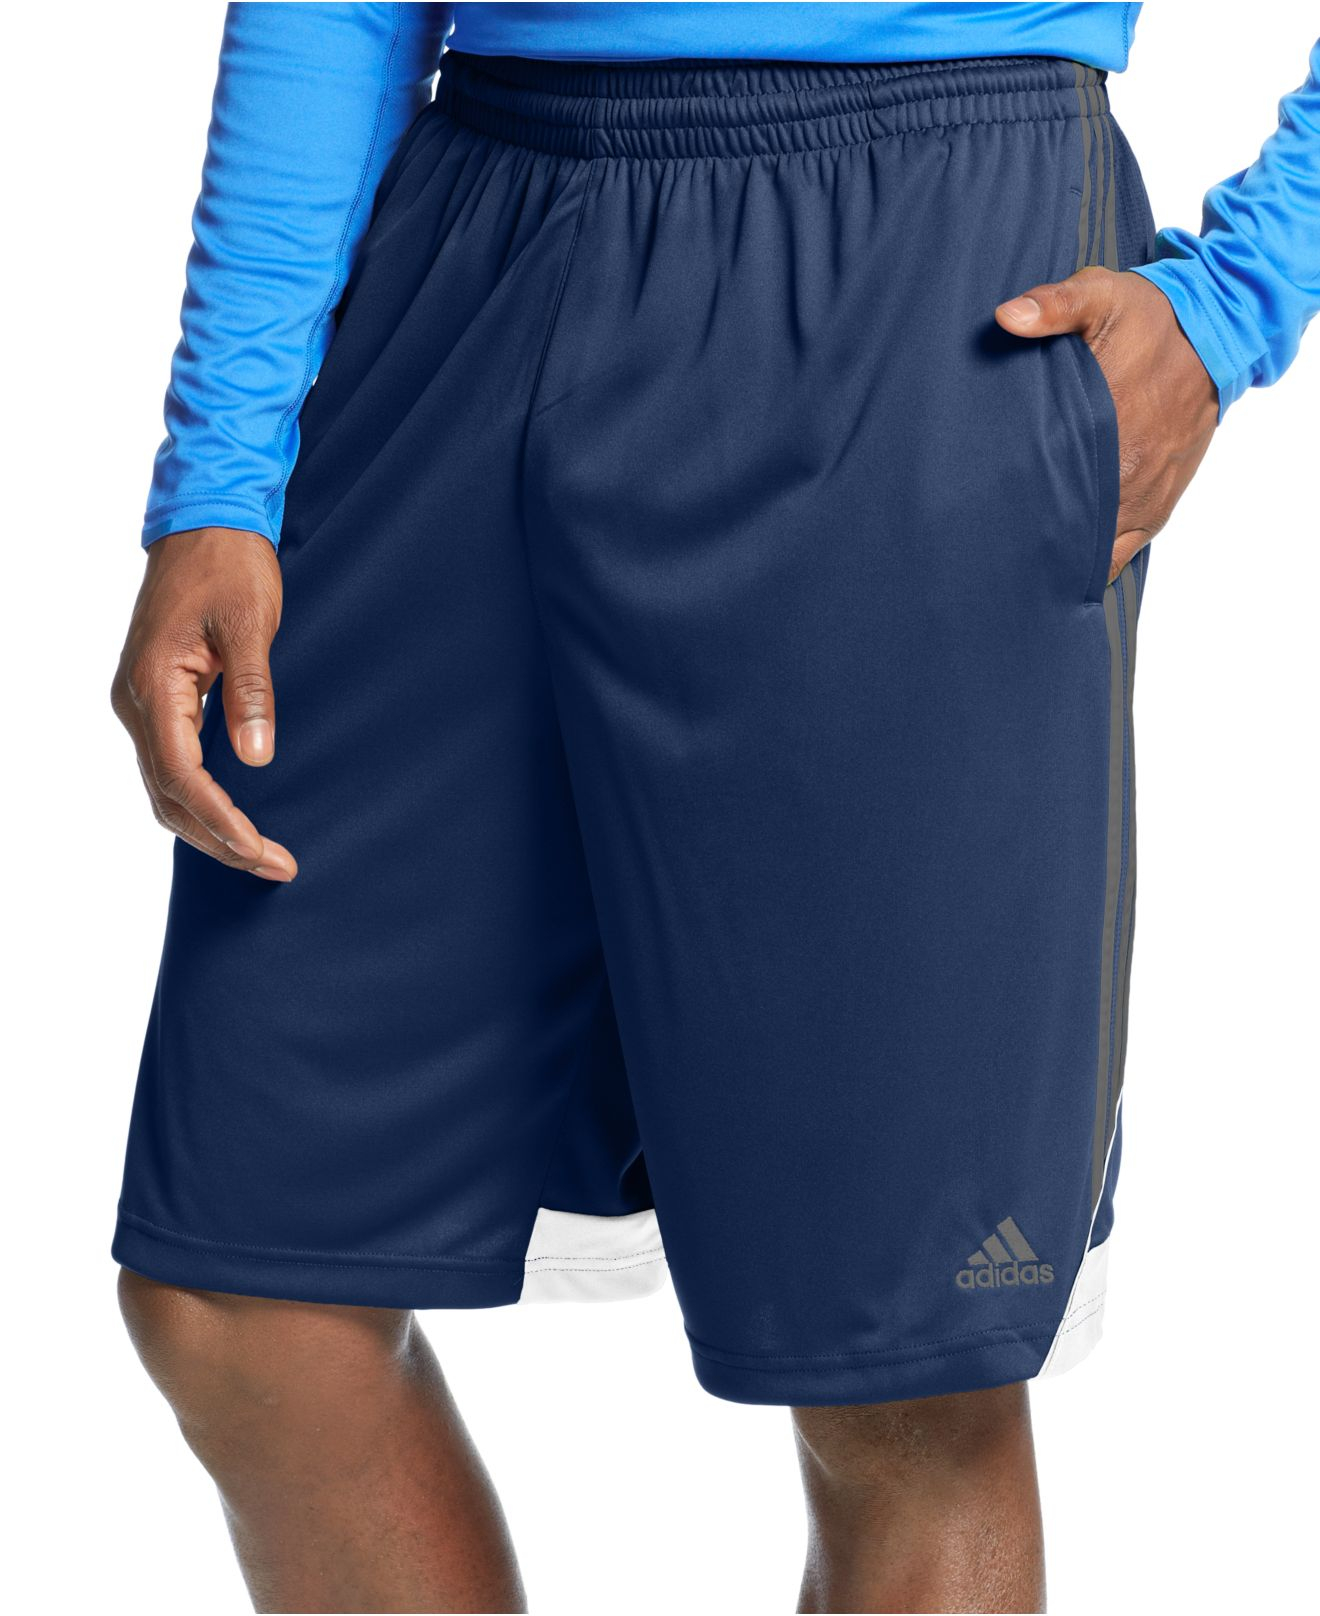 Adidas Big And Tall Men S 3g Speed Climalite Shorts In